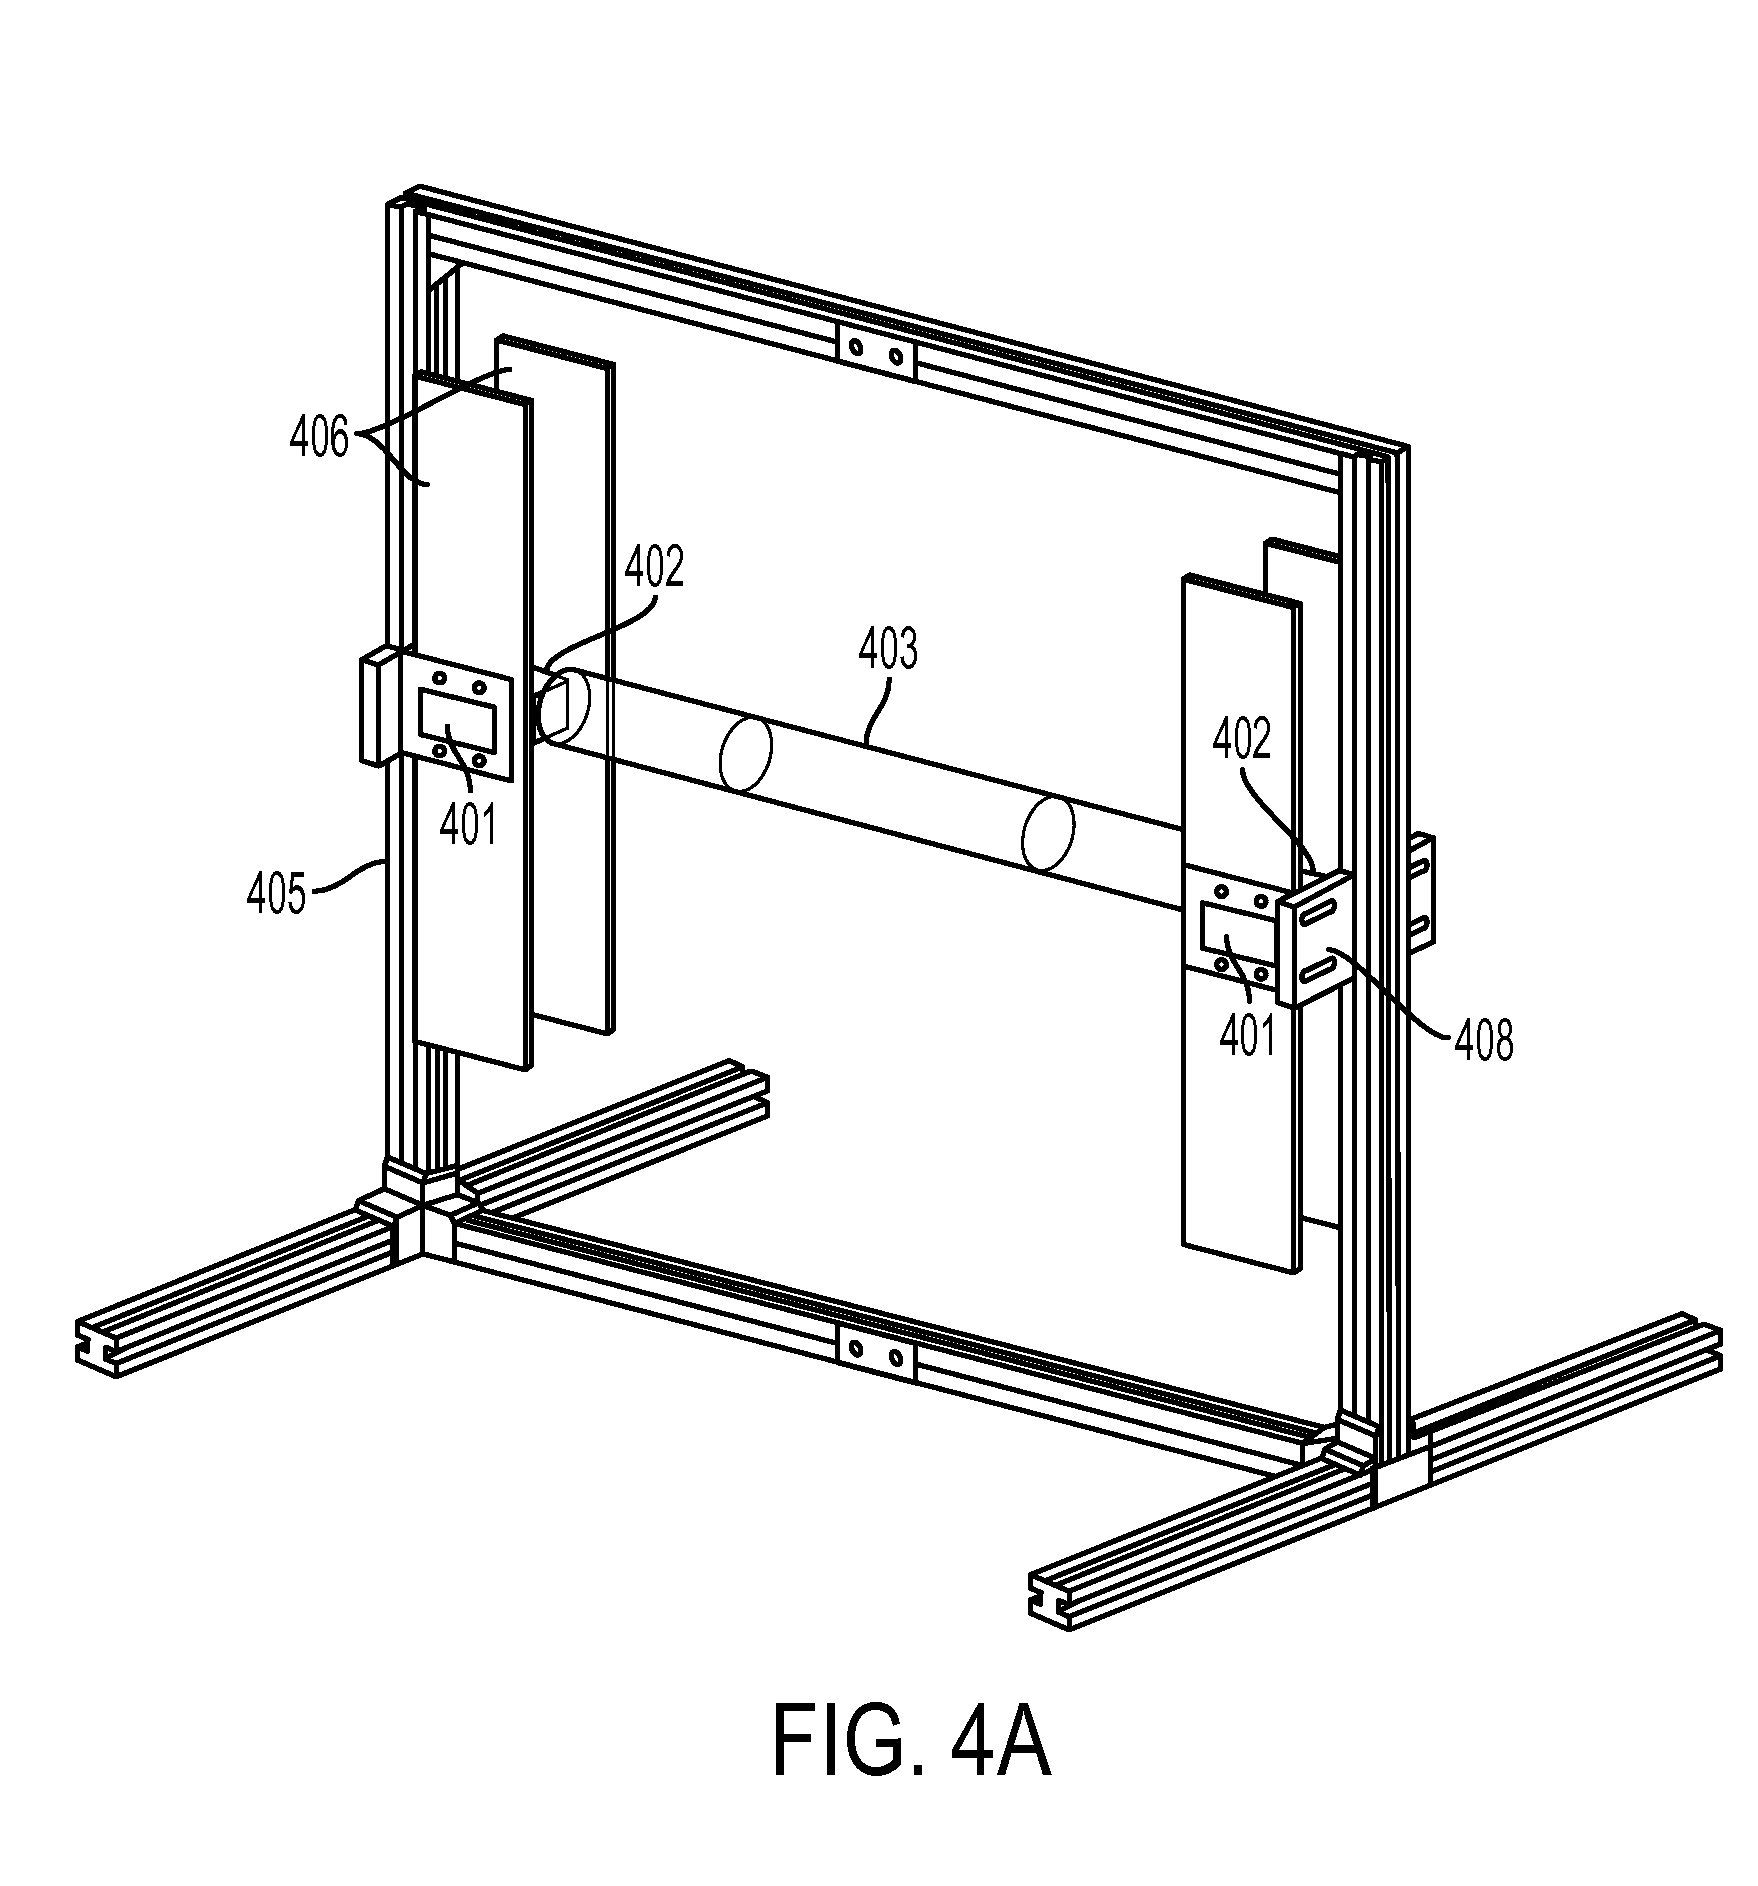 ... US20140175800 - Non-Rotating Wind Energy Generator - Google Patents